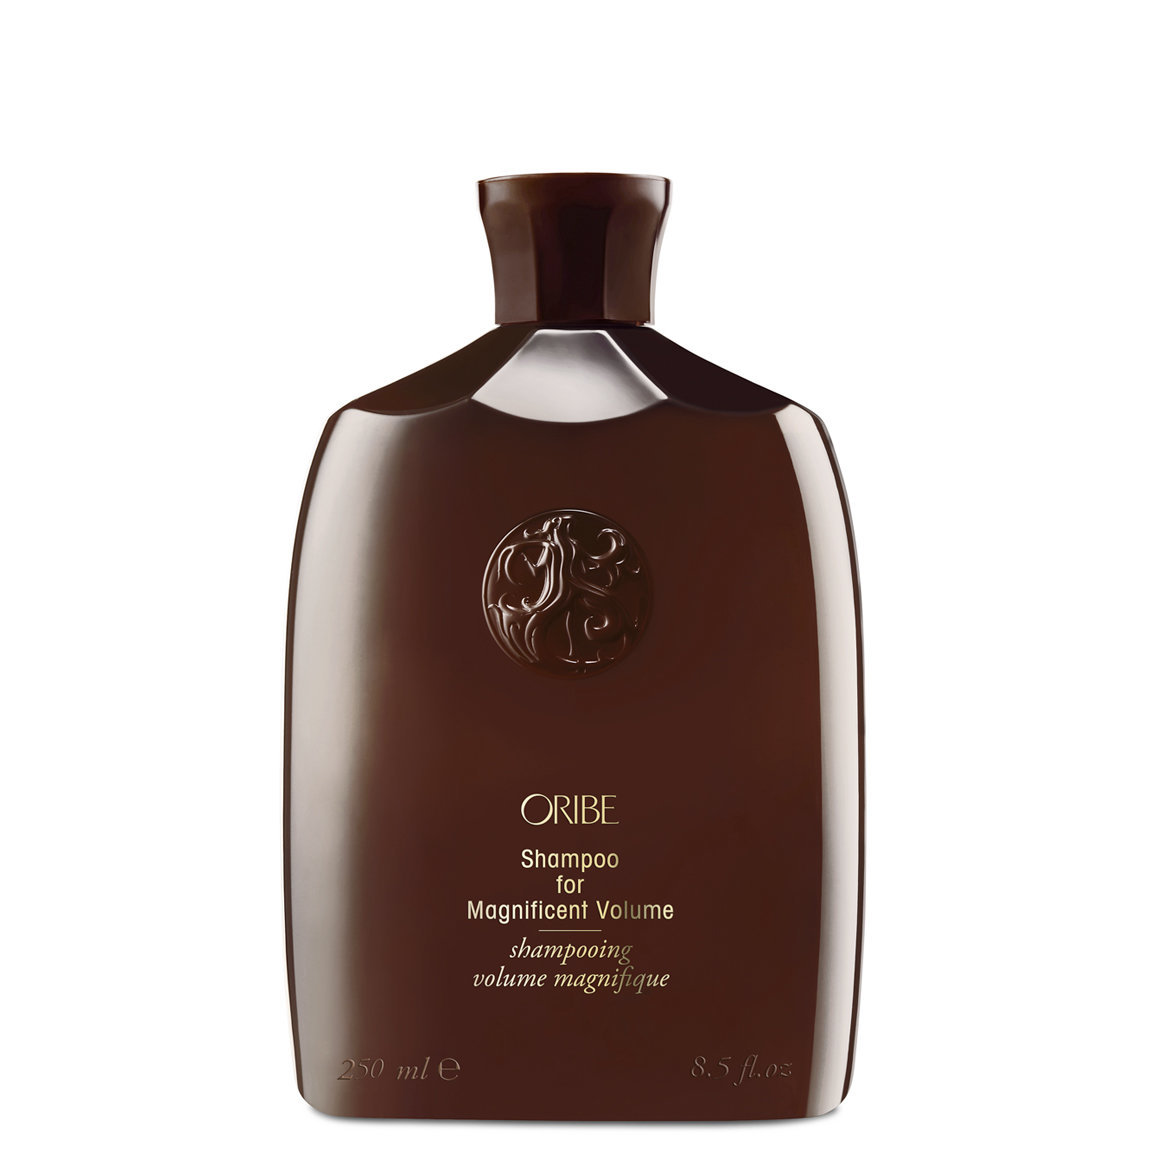 Oribe Shampoo for Magnificent Volume alternative view 1 - product swatch.